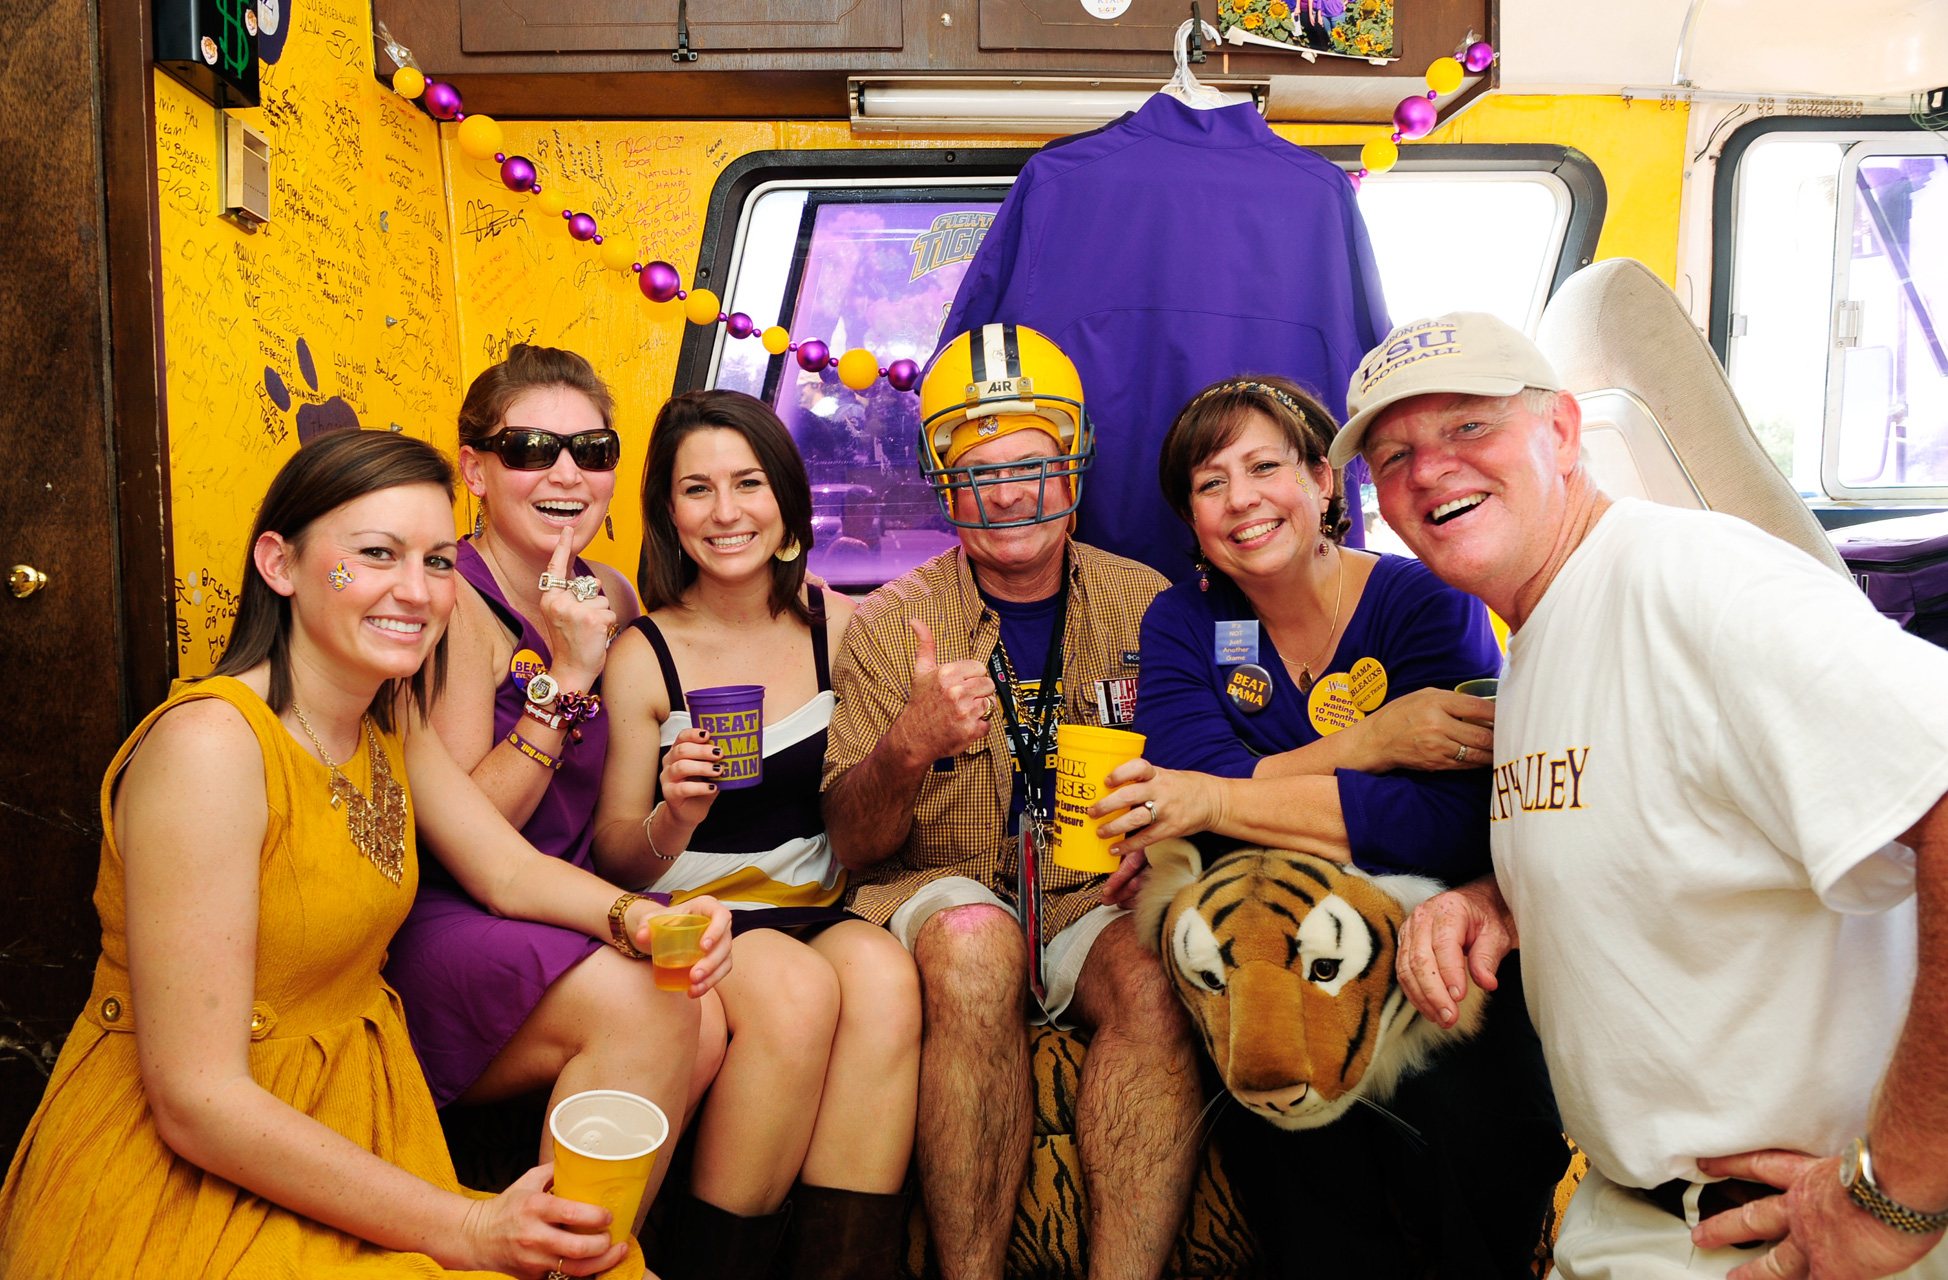 LSU Fans Inside RV